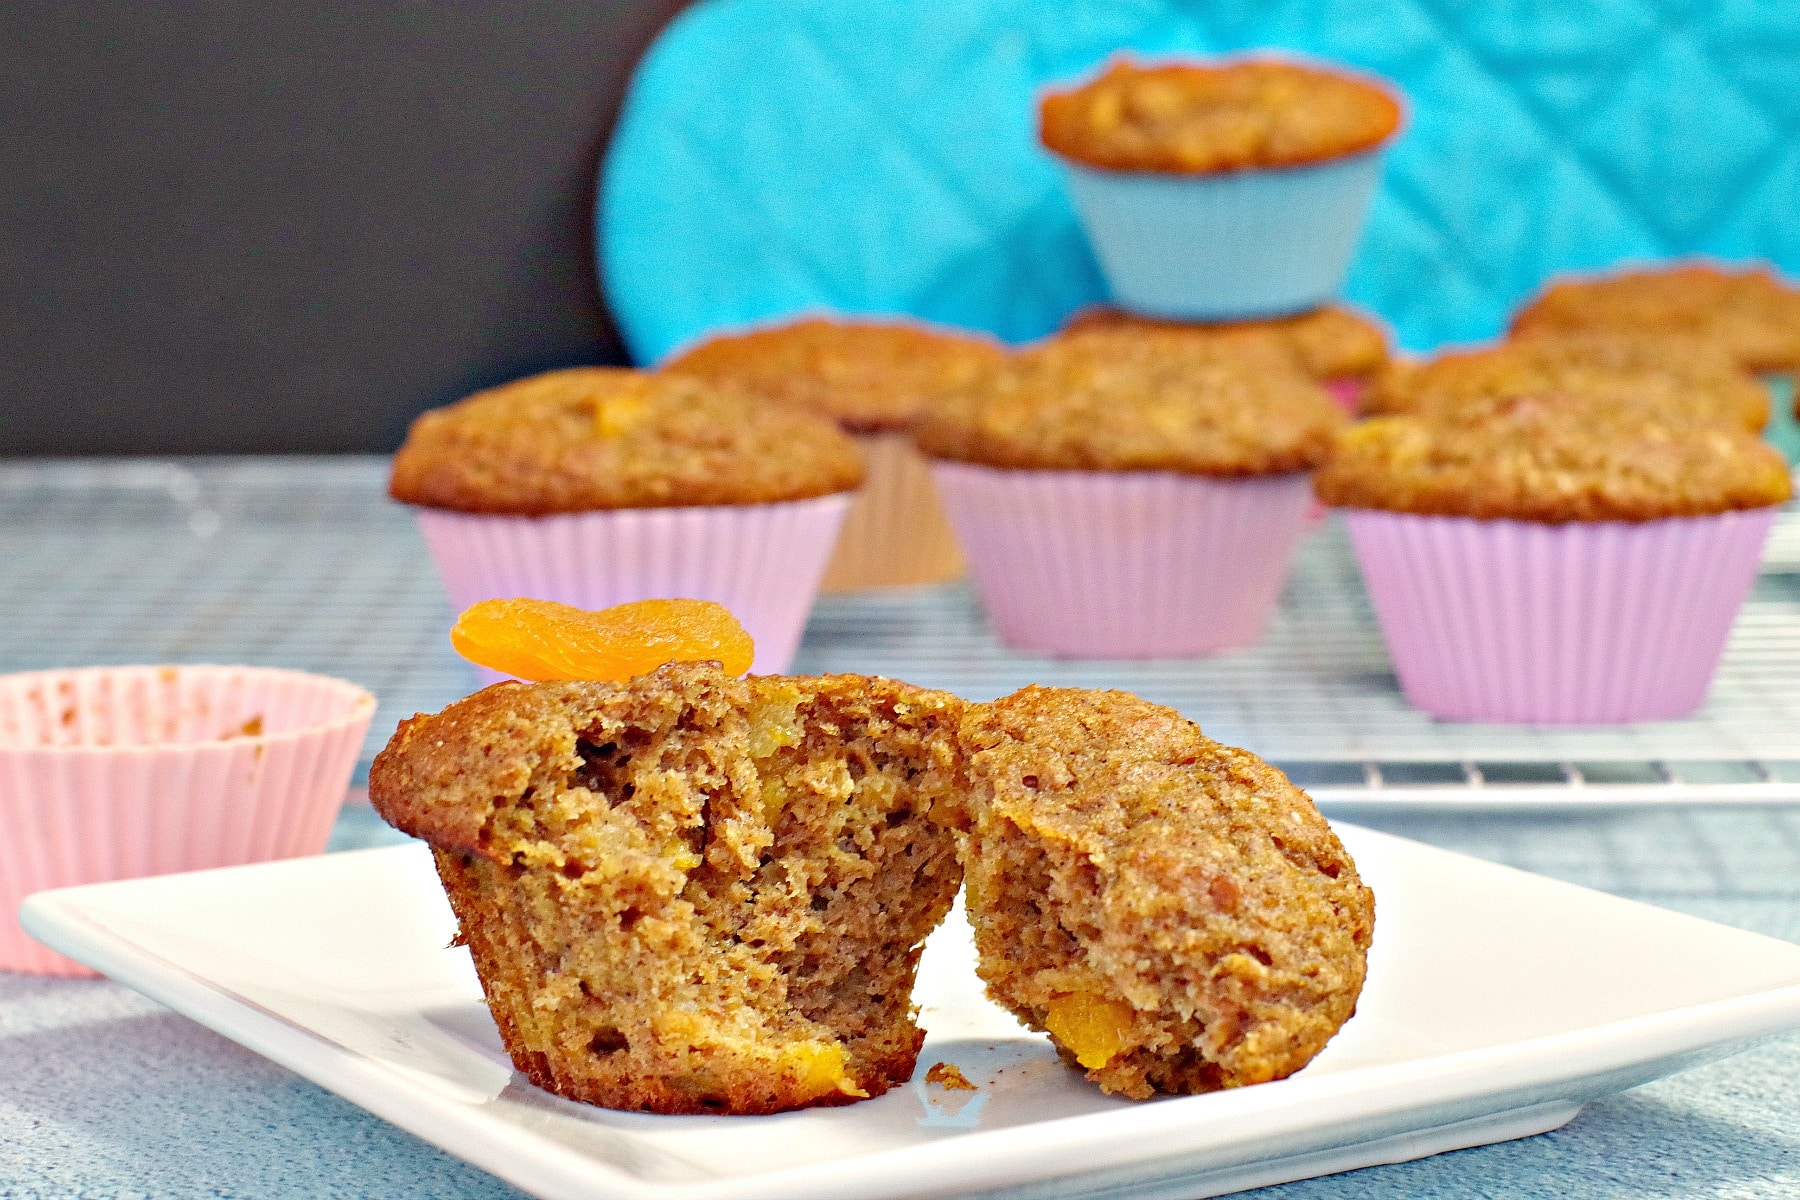 Muffin split in half with more muffins in background